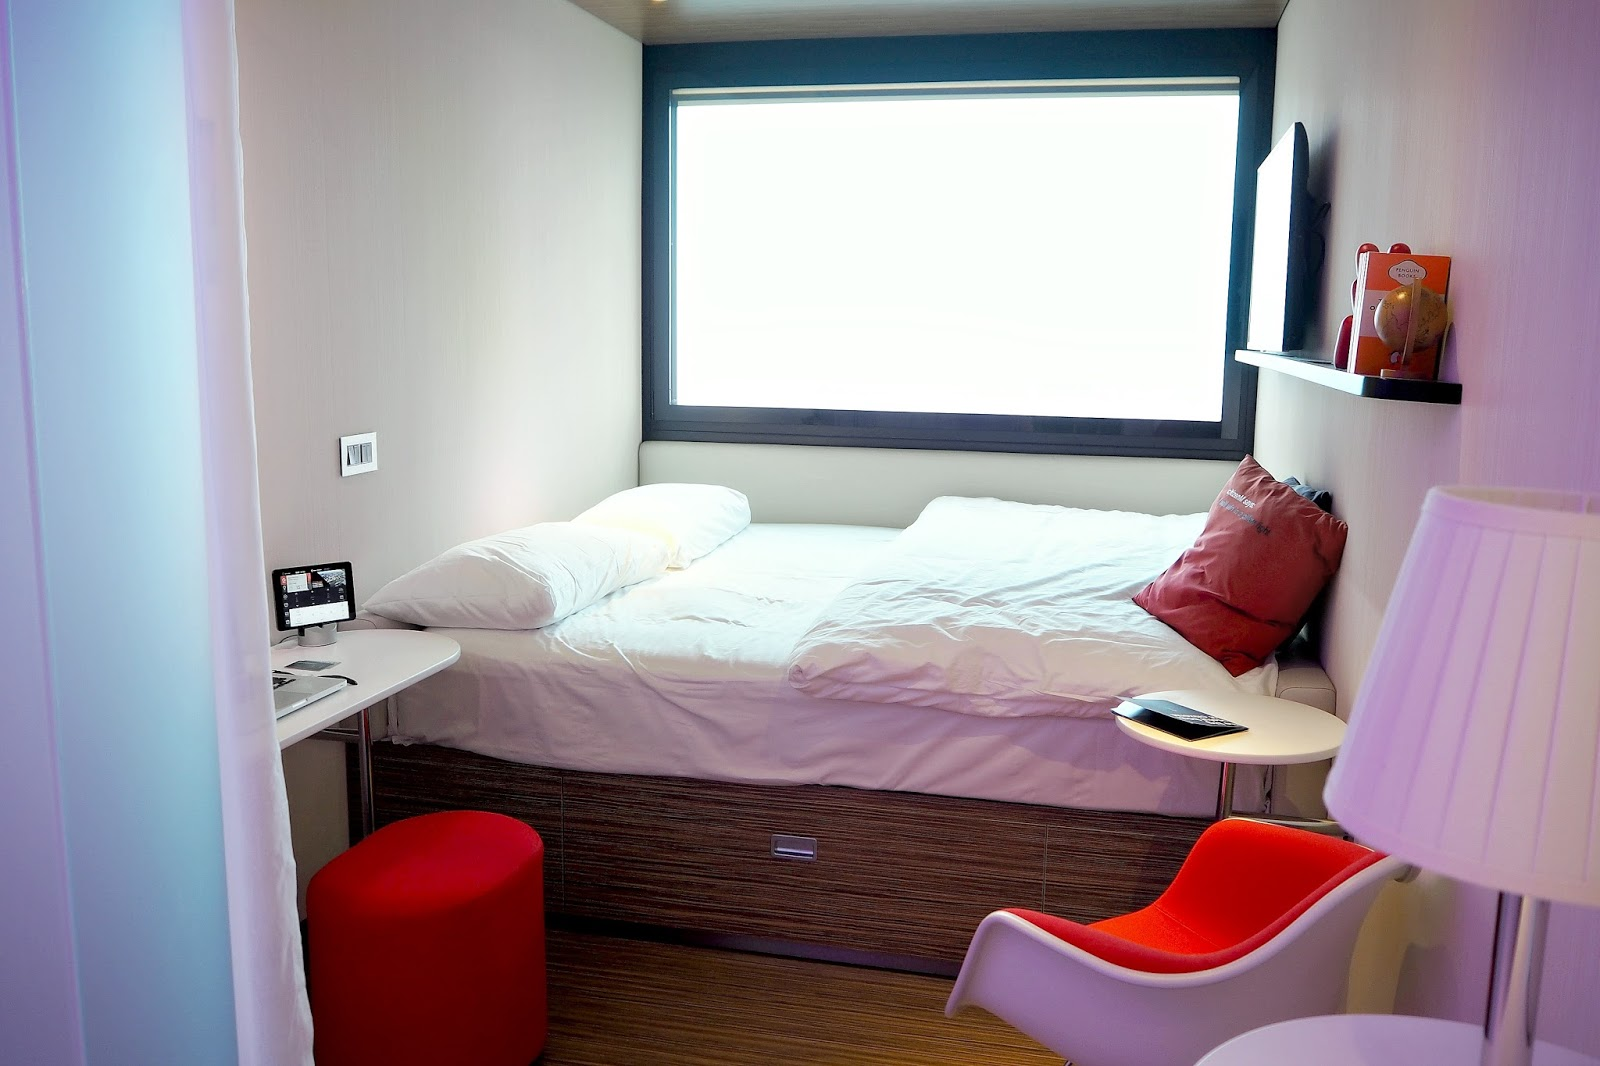 citizenm shoreditch blogger review, hotel review